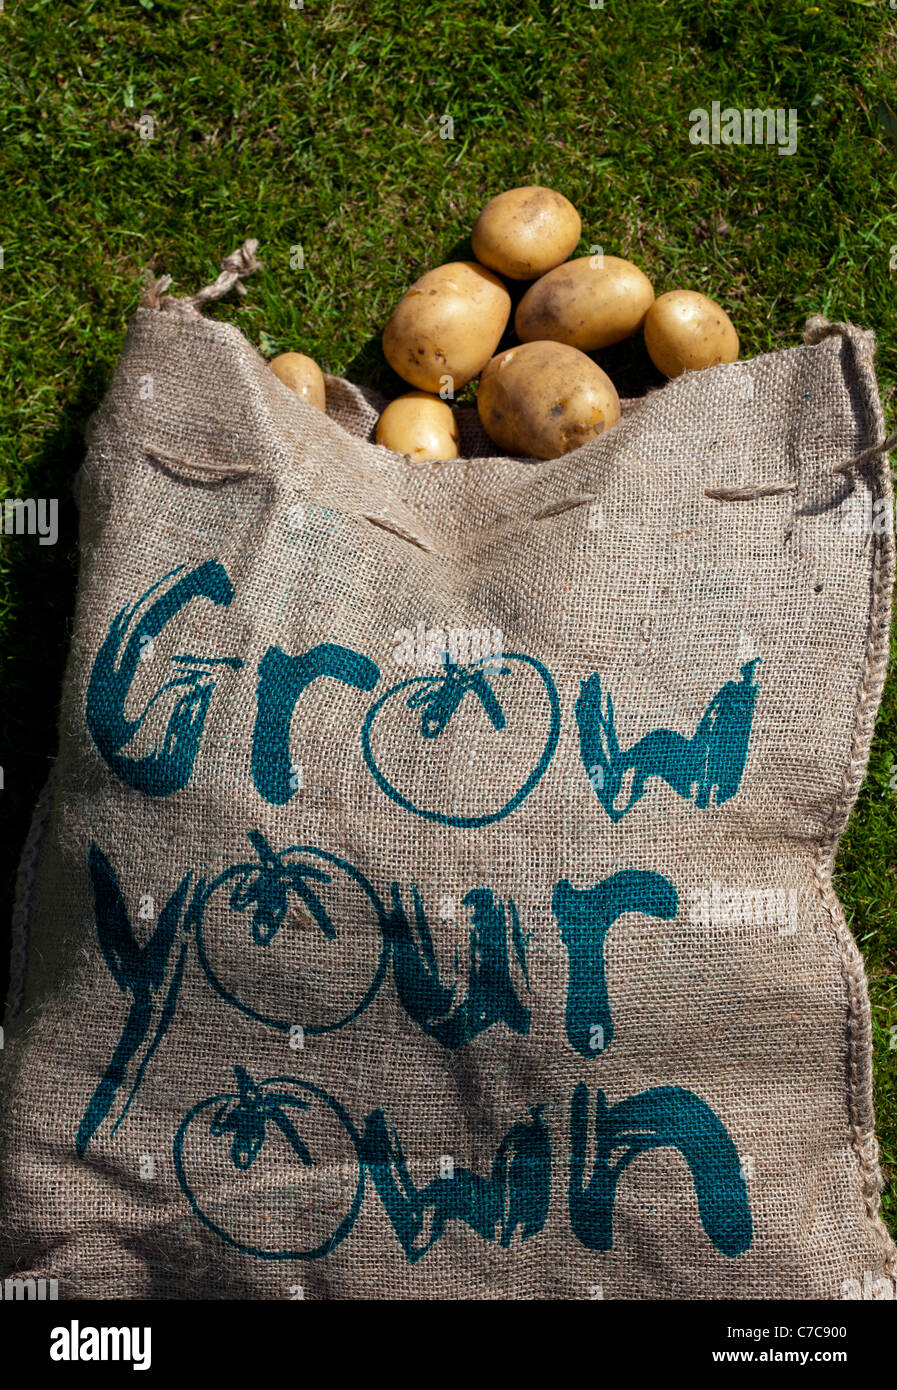 Home Grown potatoes in hessian sack with Grow Your Own printed on it Stock Photo